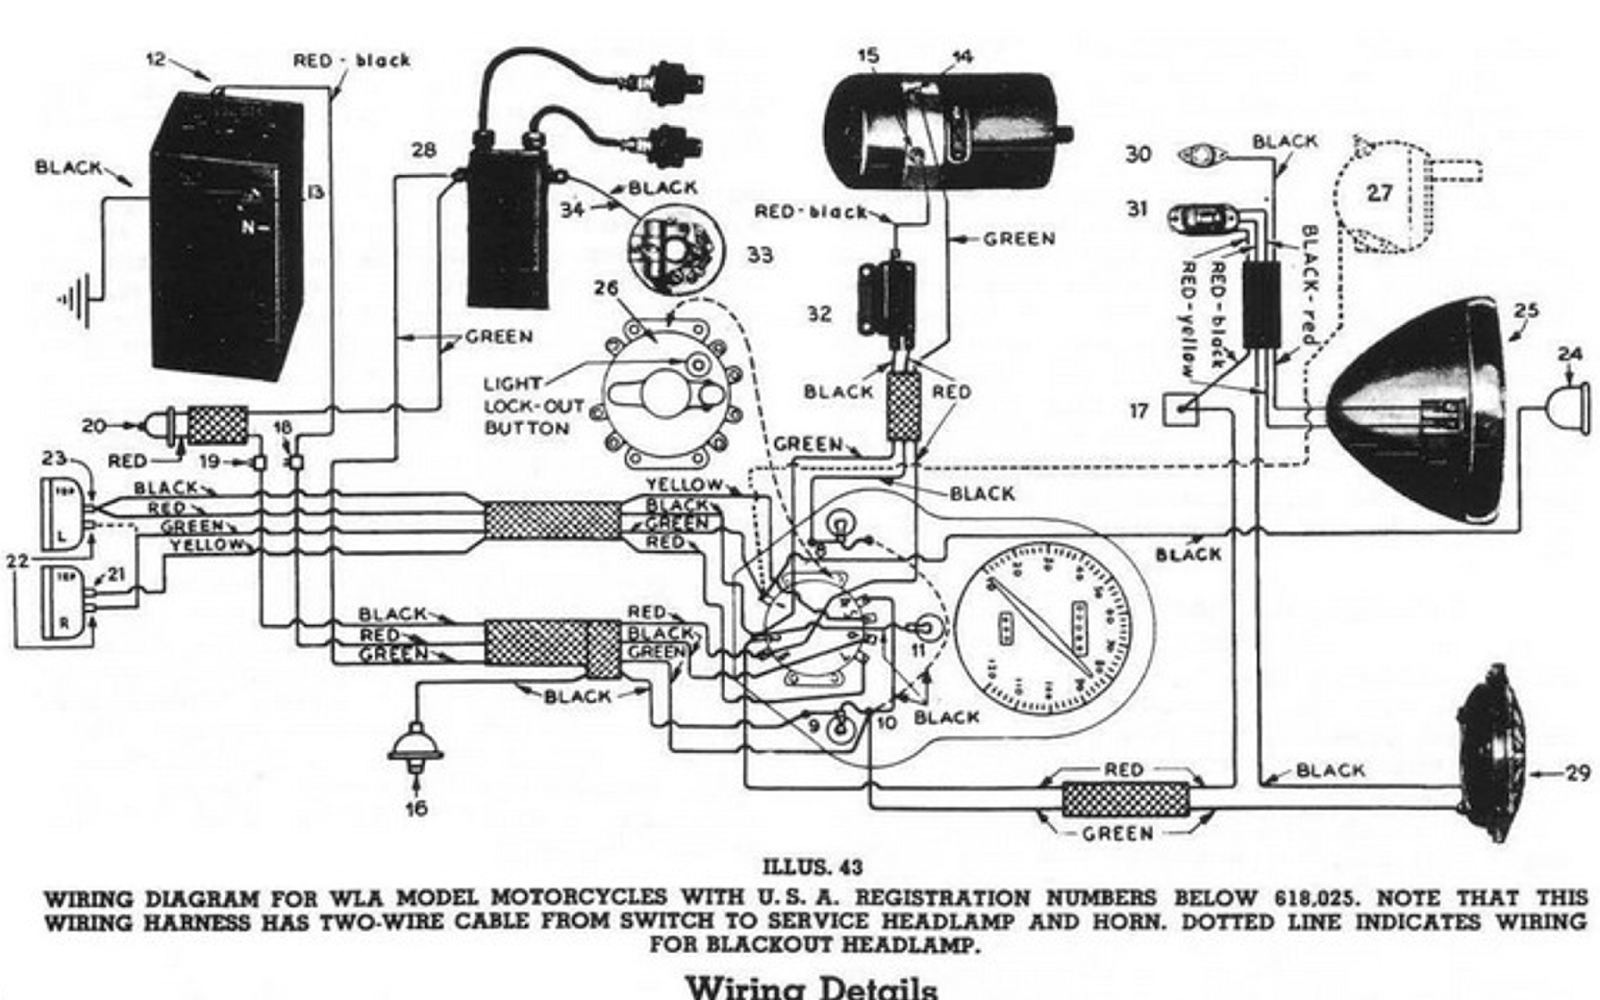 Harley 45 Wiring Diagram Archive Of Automotive 1989 Electra Glide 1941 Davidson Wl Restoration Re The Rh Harley1941wl Blogspot Com